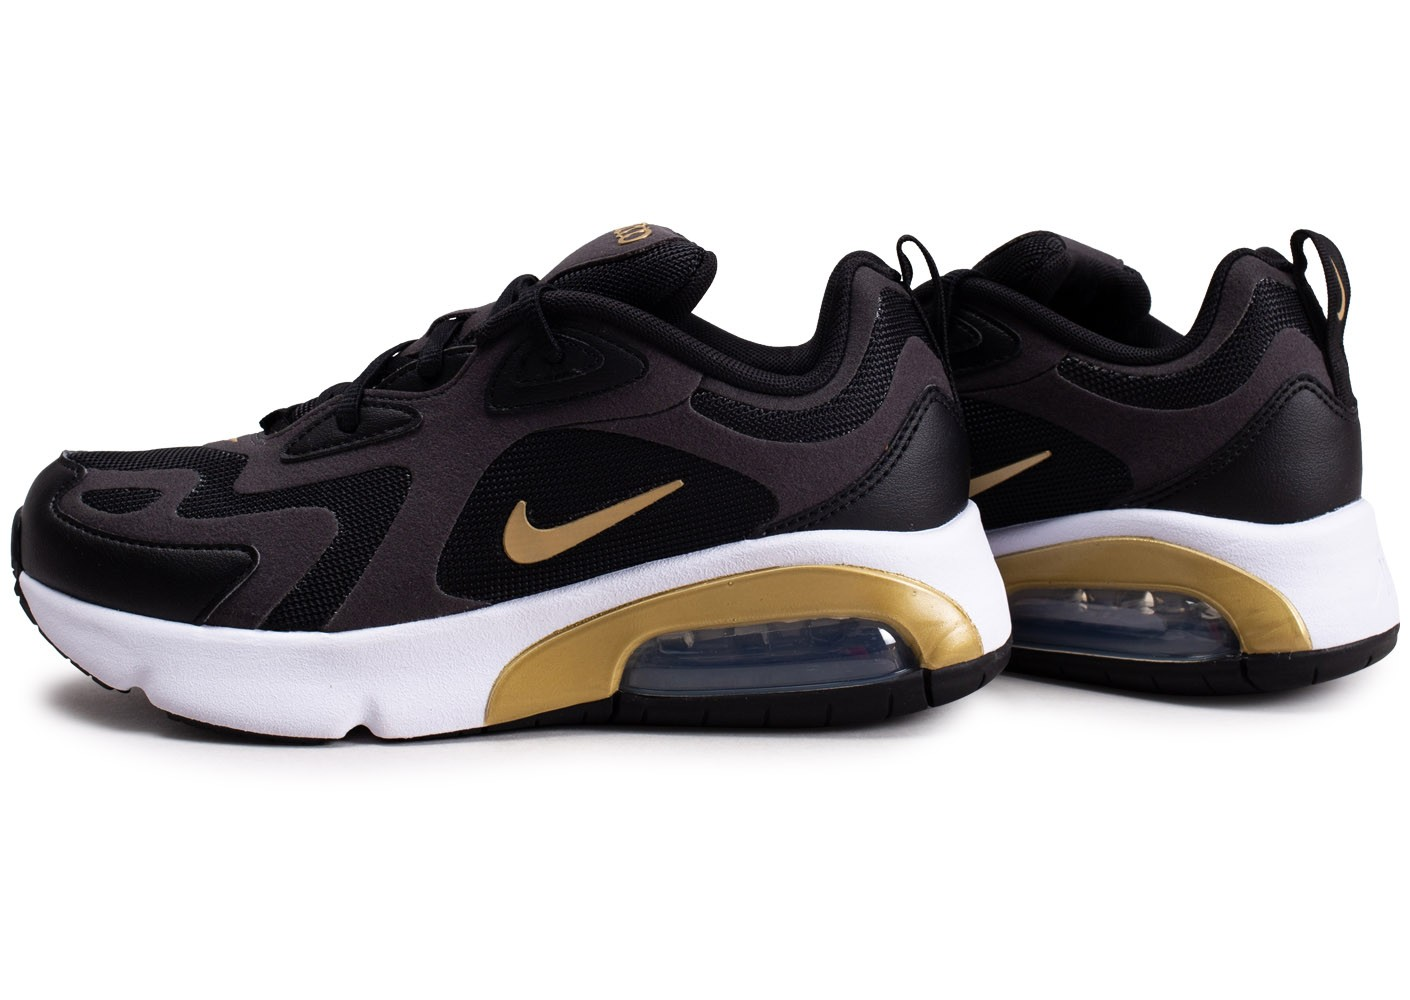 Nike Air Max 200 noir anthracite or junior Chaussures Prix